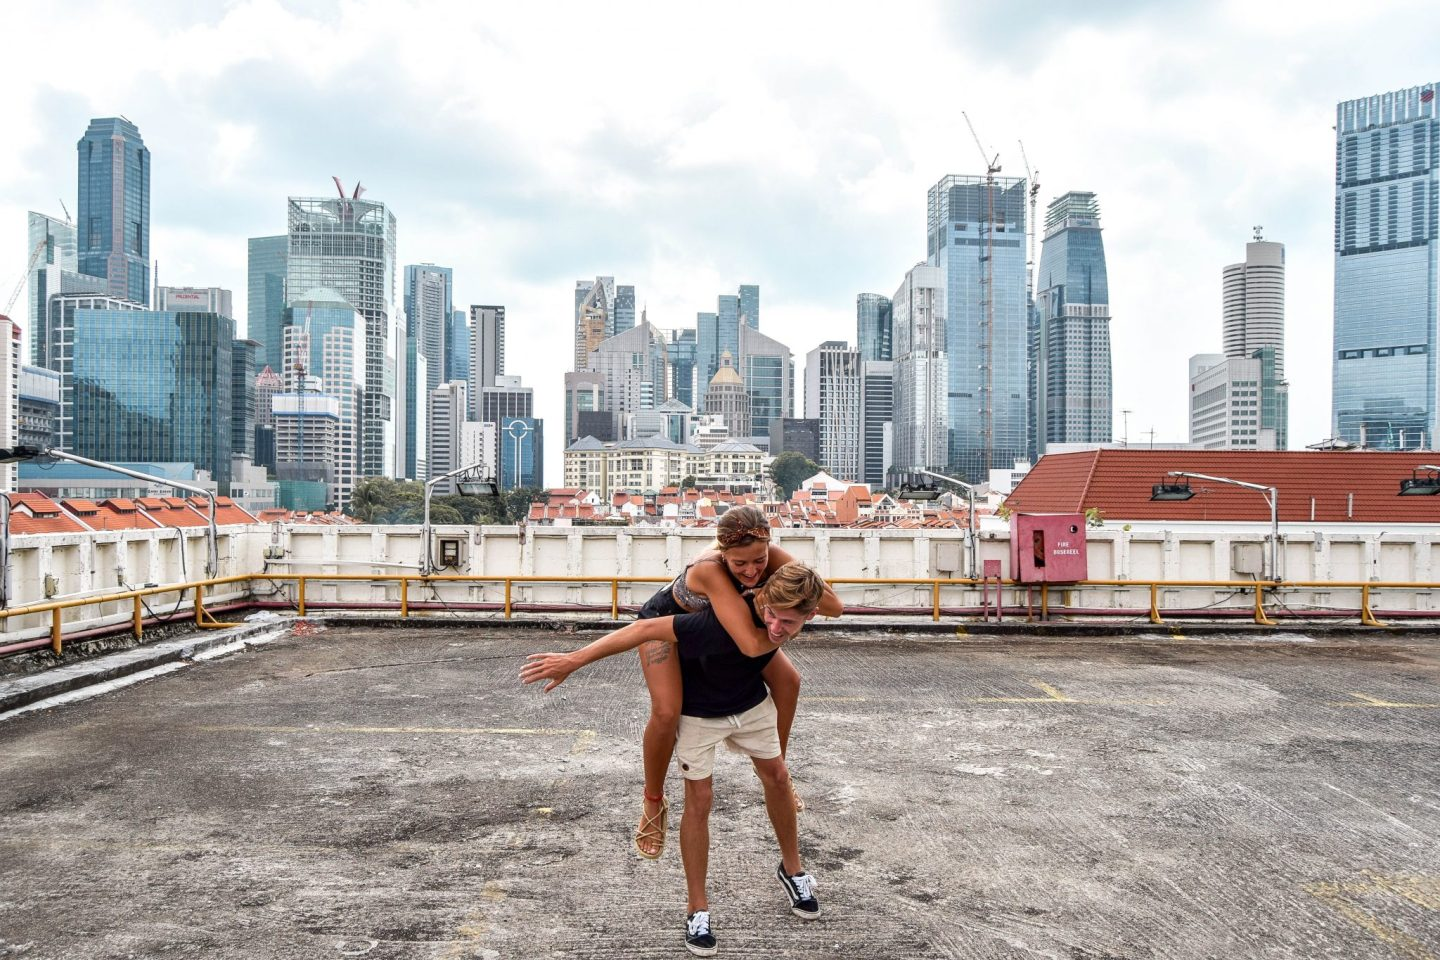 Wanderers & Warriors - Charlie & Lauren UK Travel Couple - Peoples Park Singapore - Things To Do In Chinatown Singapore